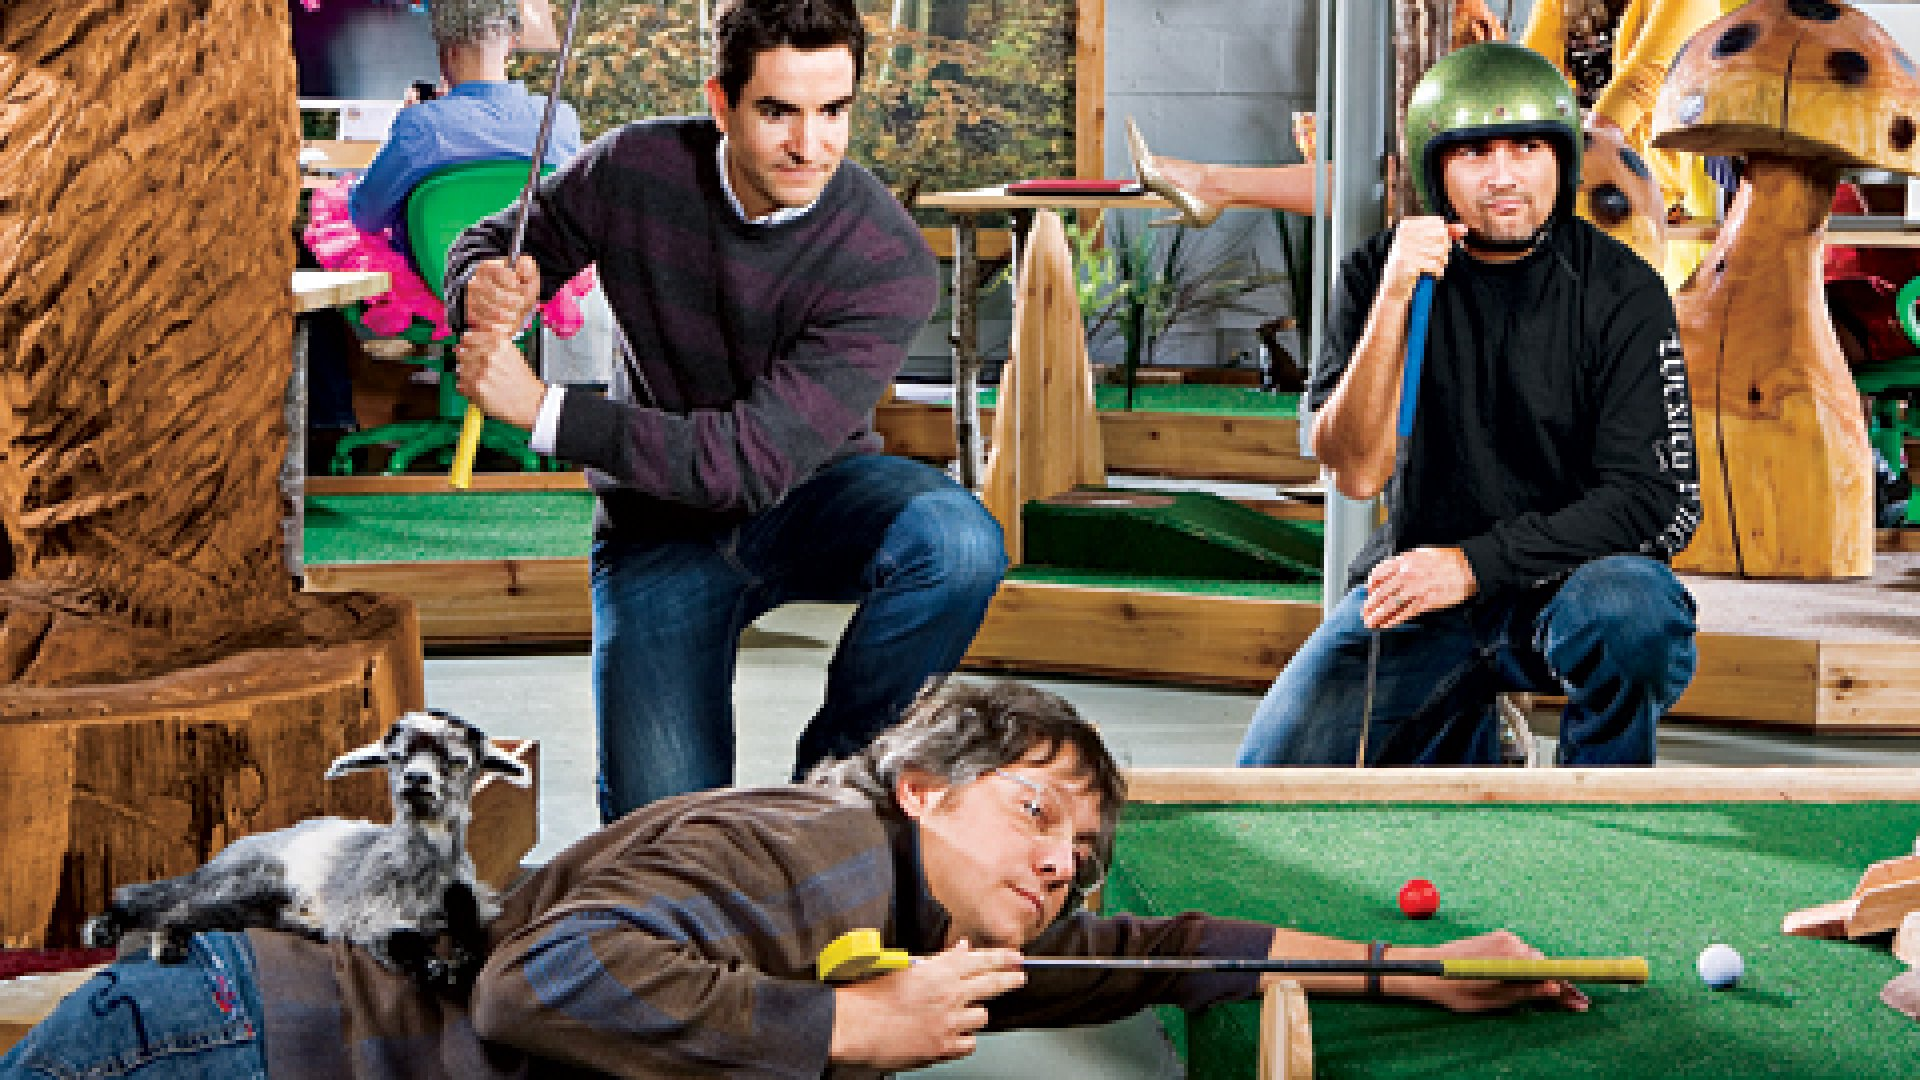 <strong>Playing Through</strong> The Principals of Wexley on the corporate miniature golf course: Carl McAllister (with goat), Brian Marr(with raised putter), and Ian Cohen.